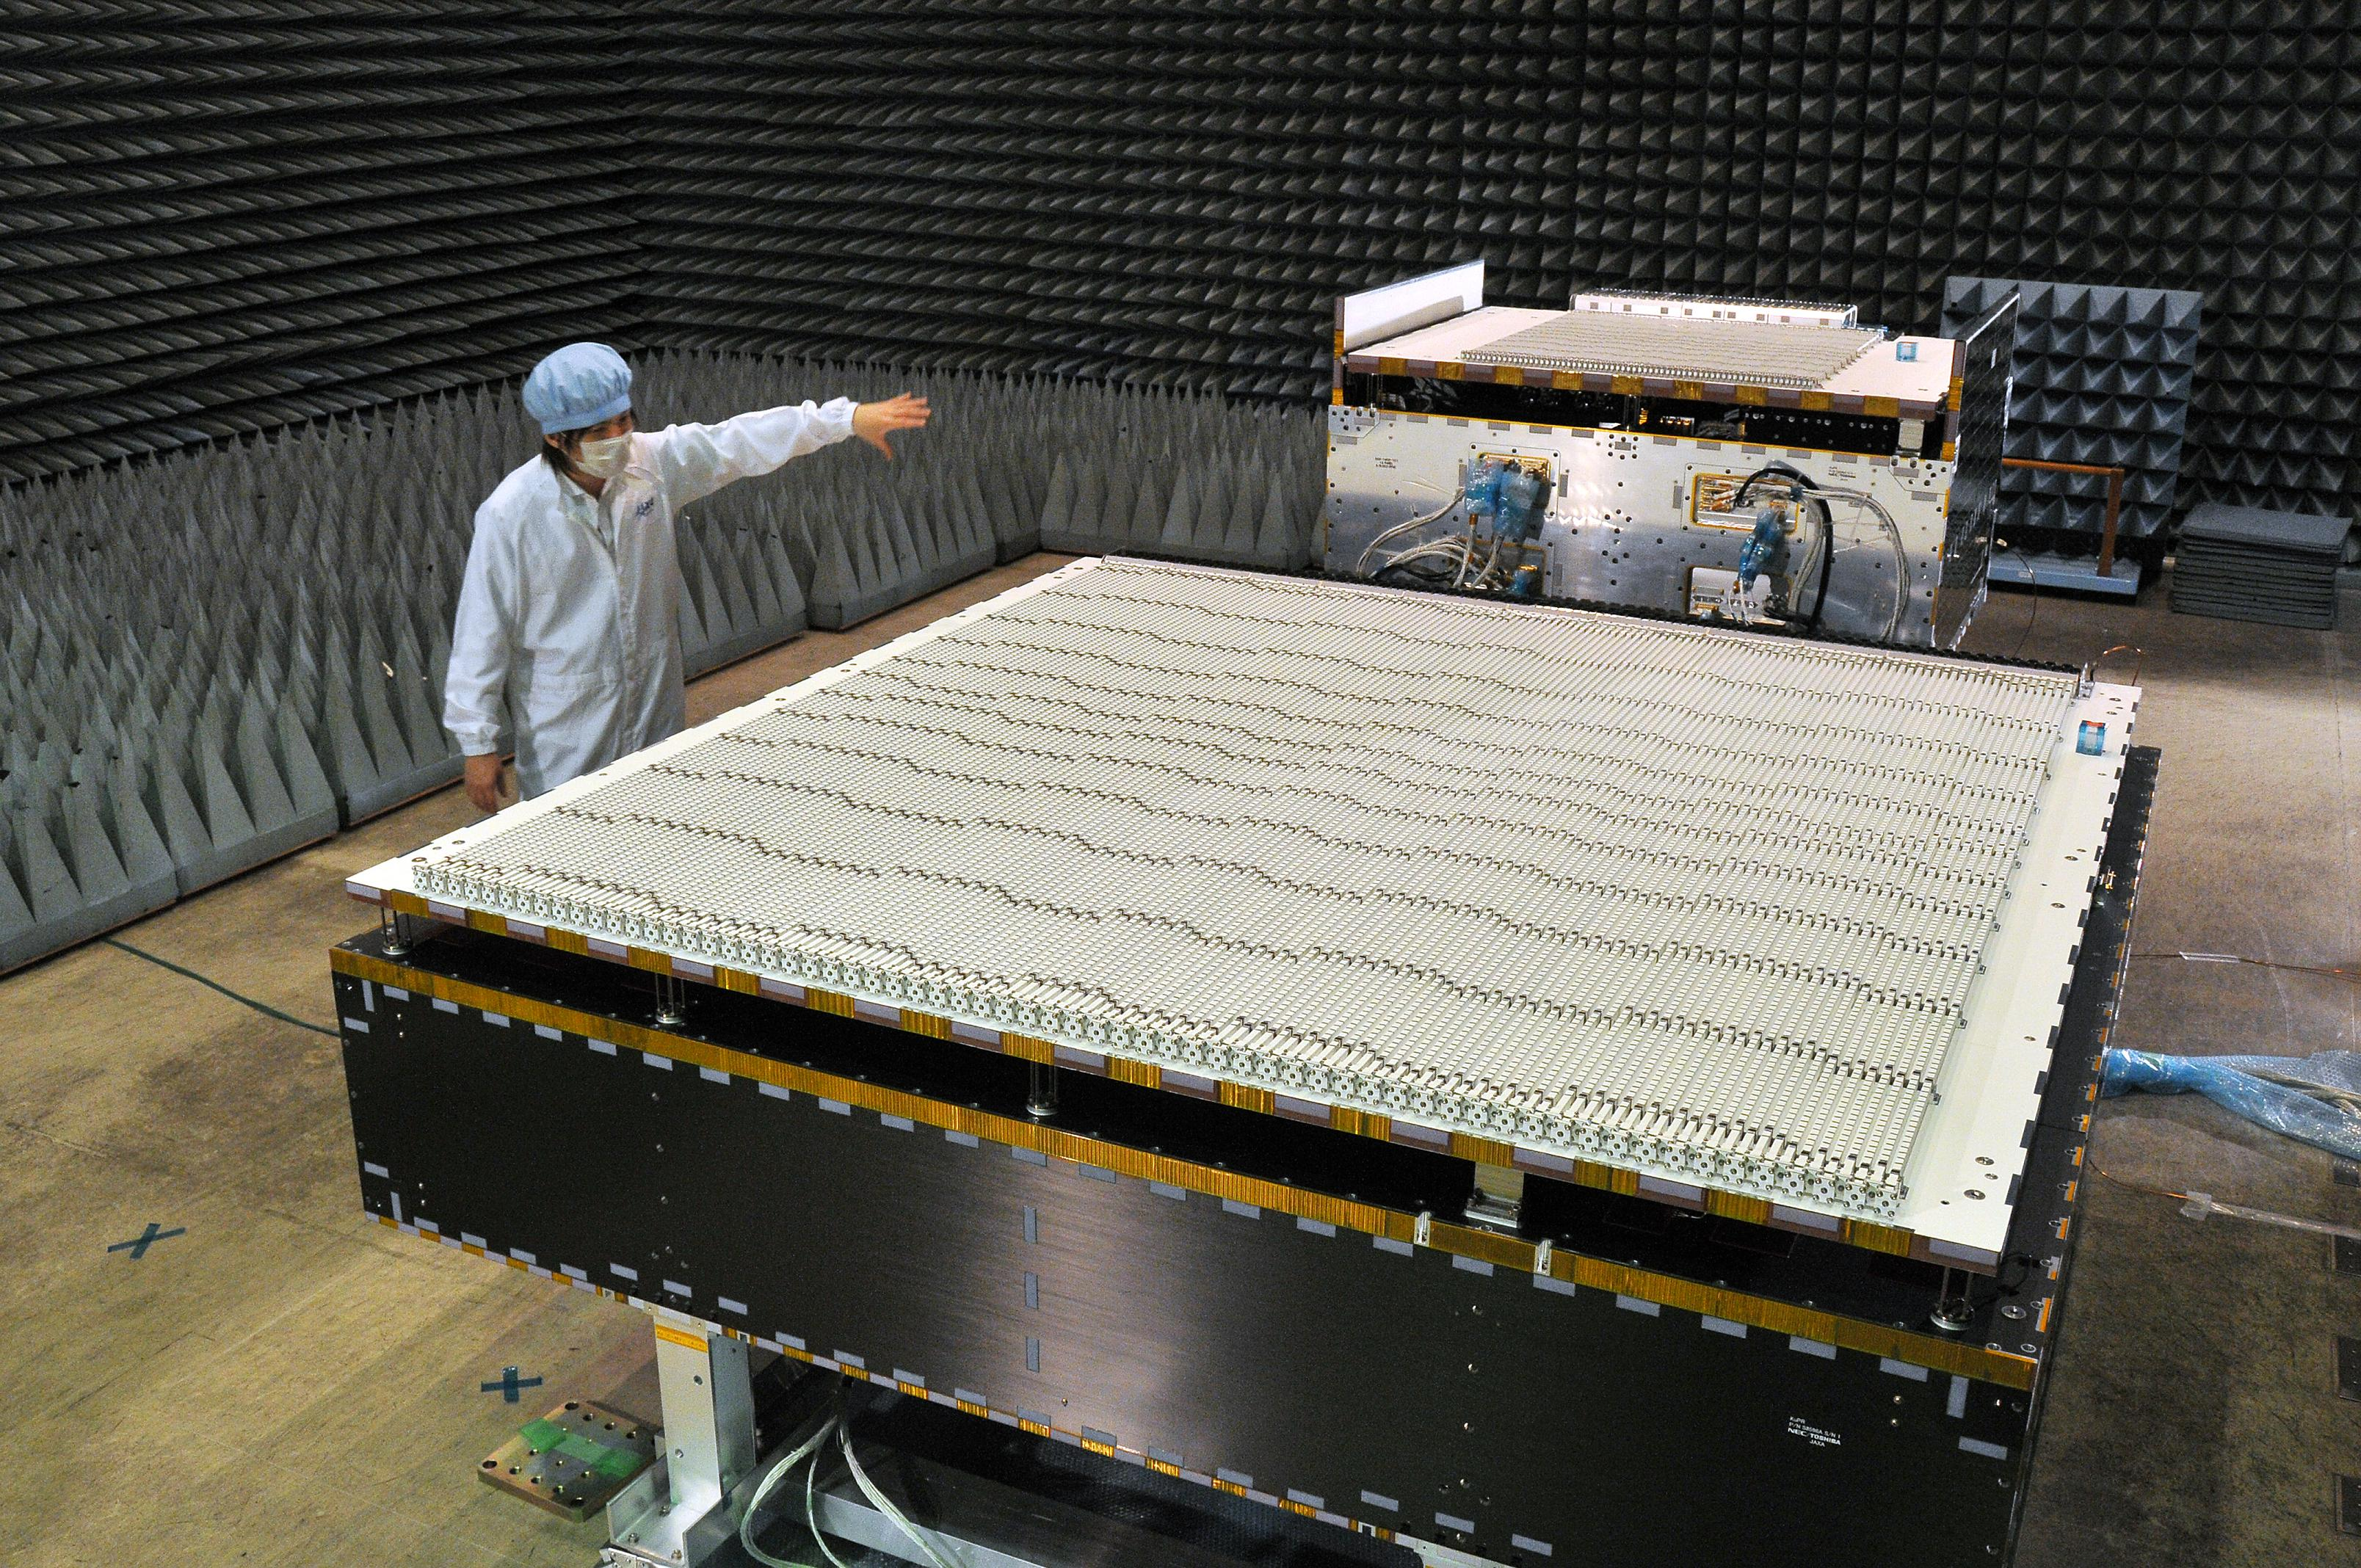 A JAXA scientist standing next to the Dual-frequency Precipitation Radar (DPR) i